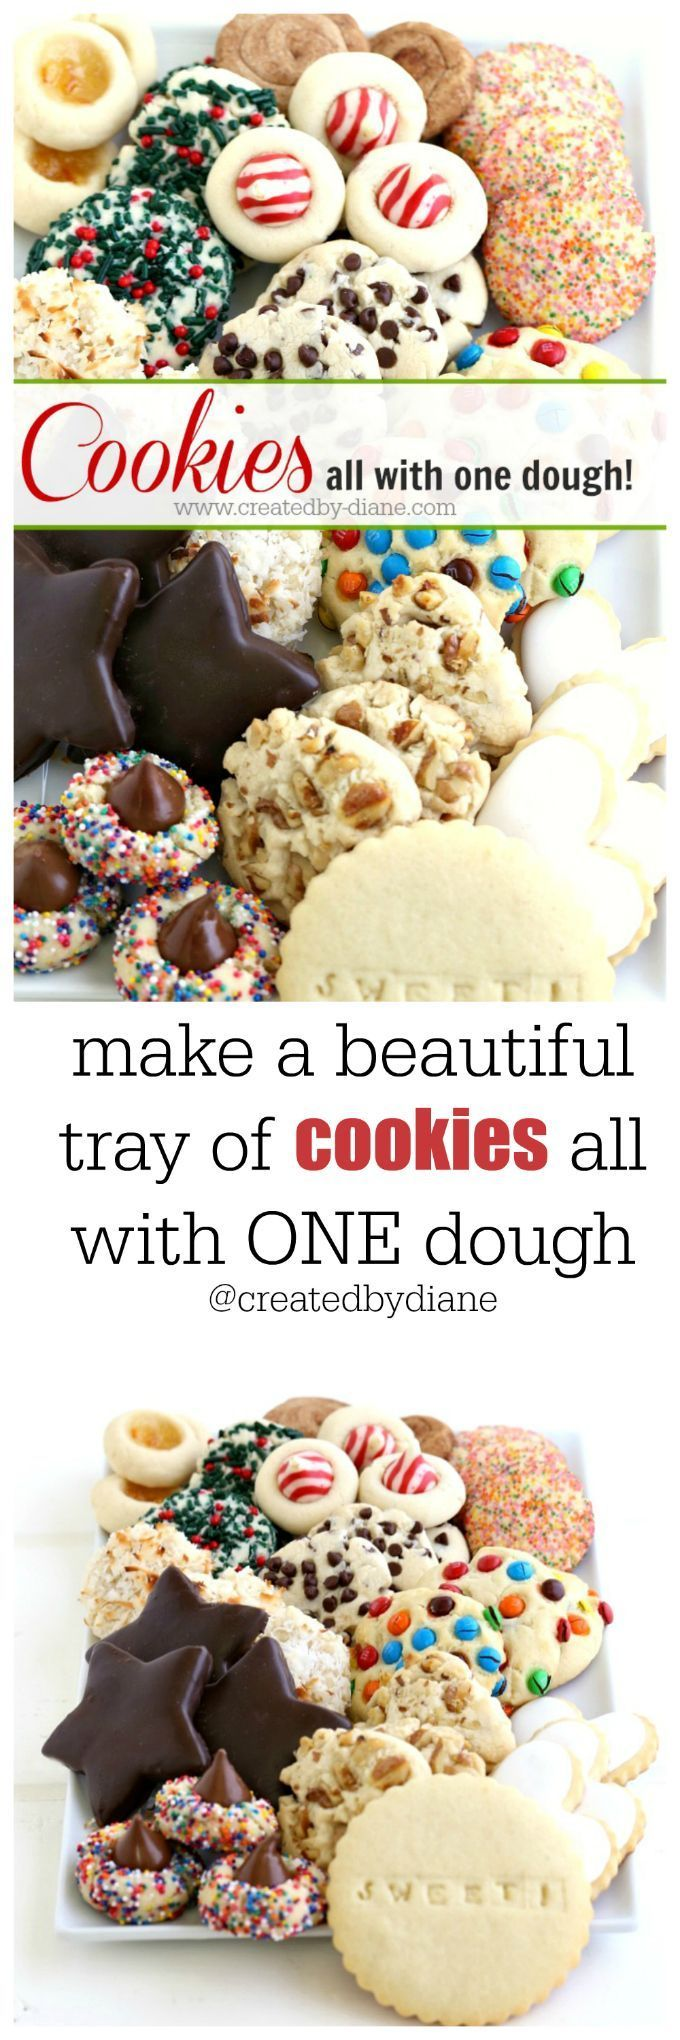 one dough cookie tray from /createdbydiane/